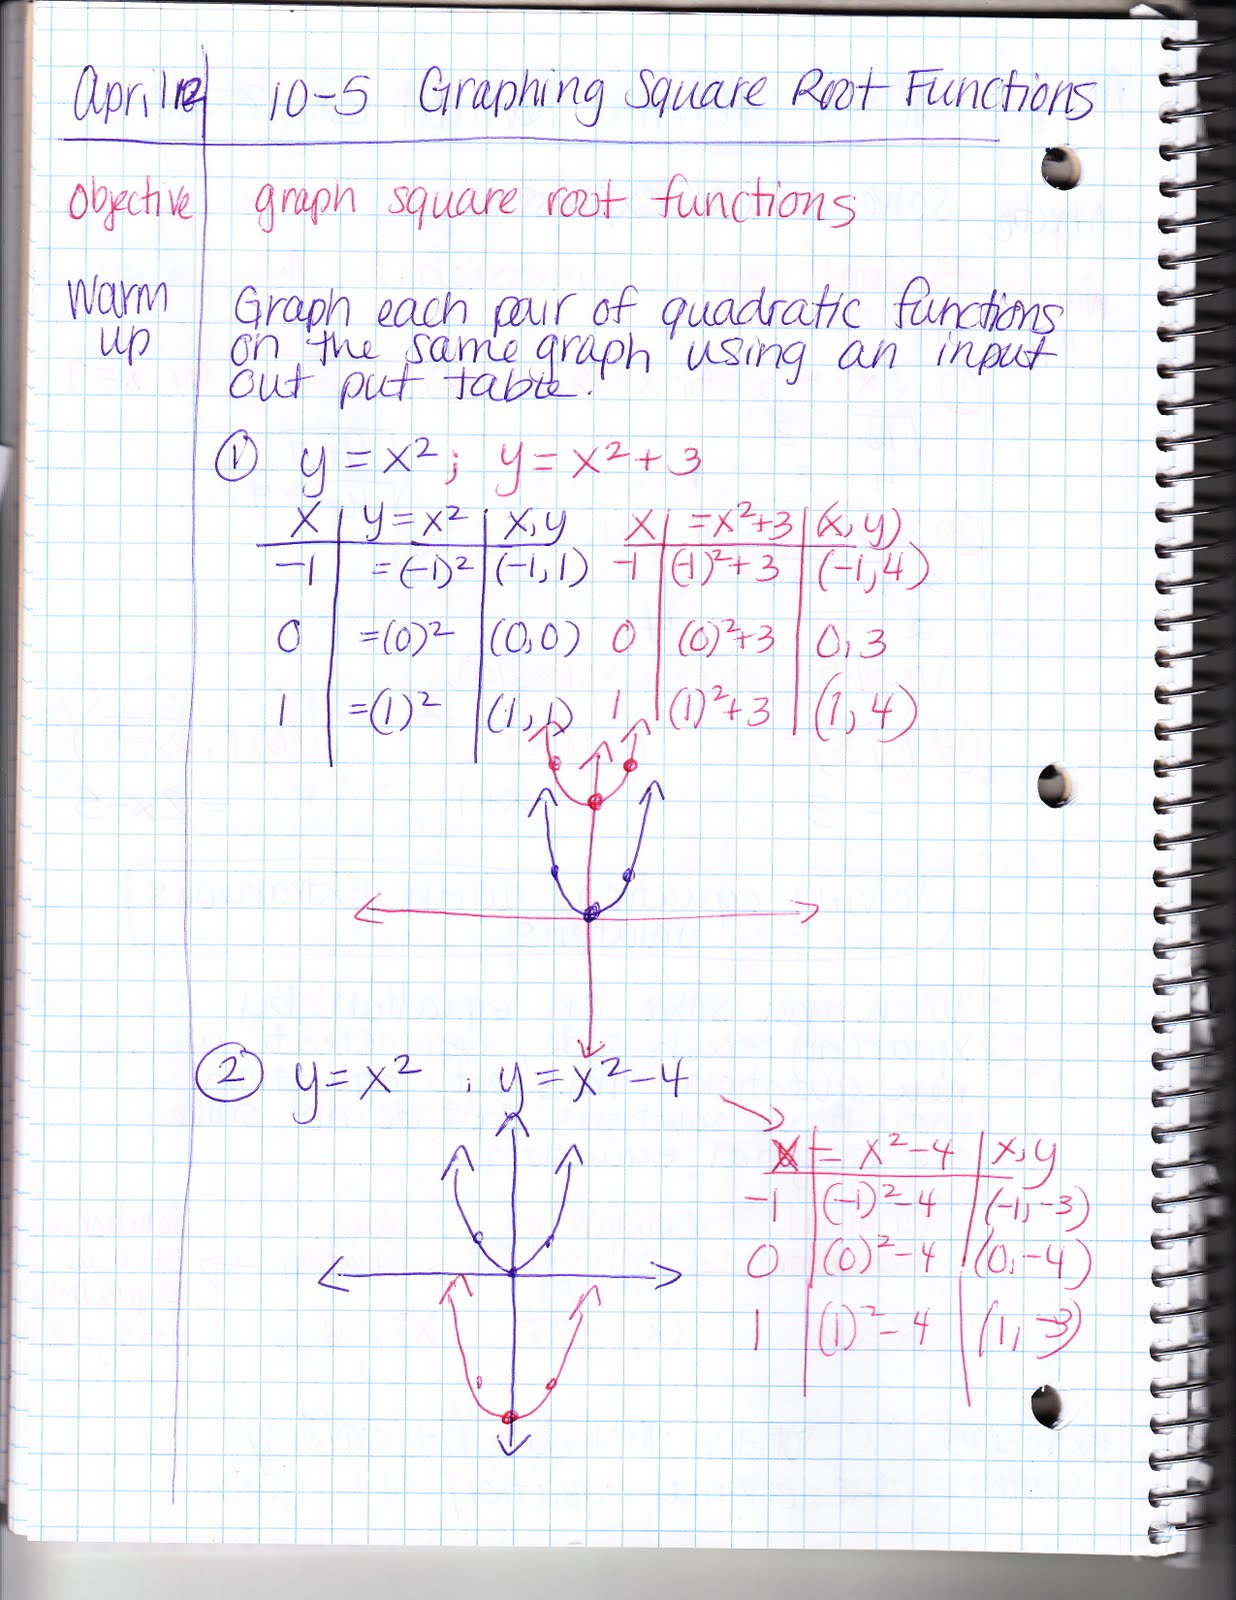 Ms Jean S Classroom Blog 10 5 Graphing Square Root Functions